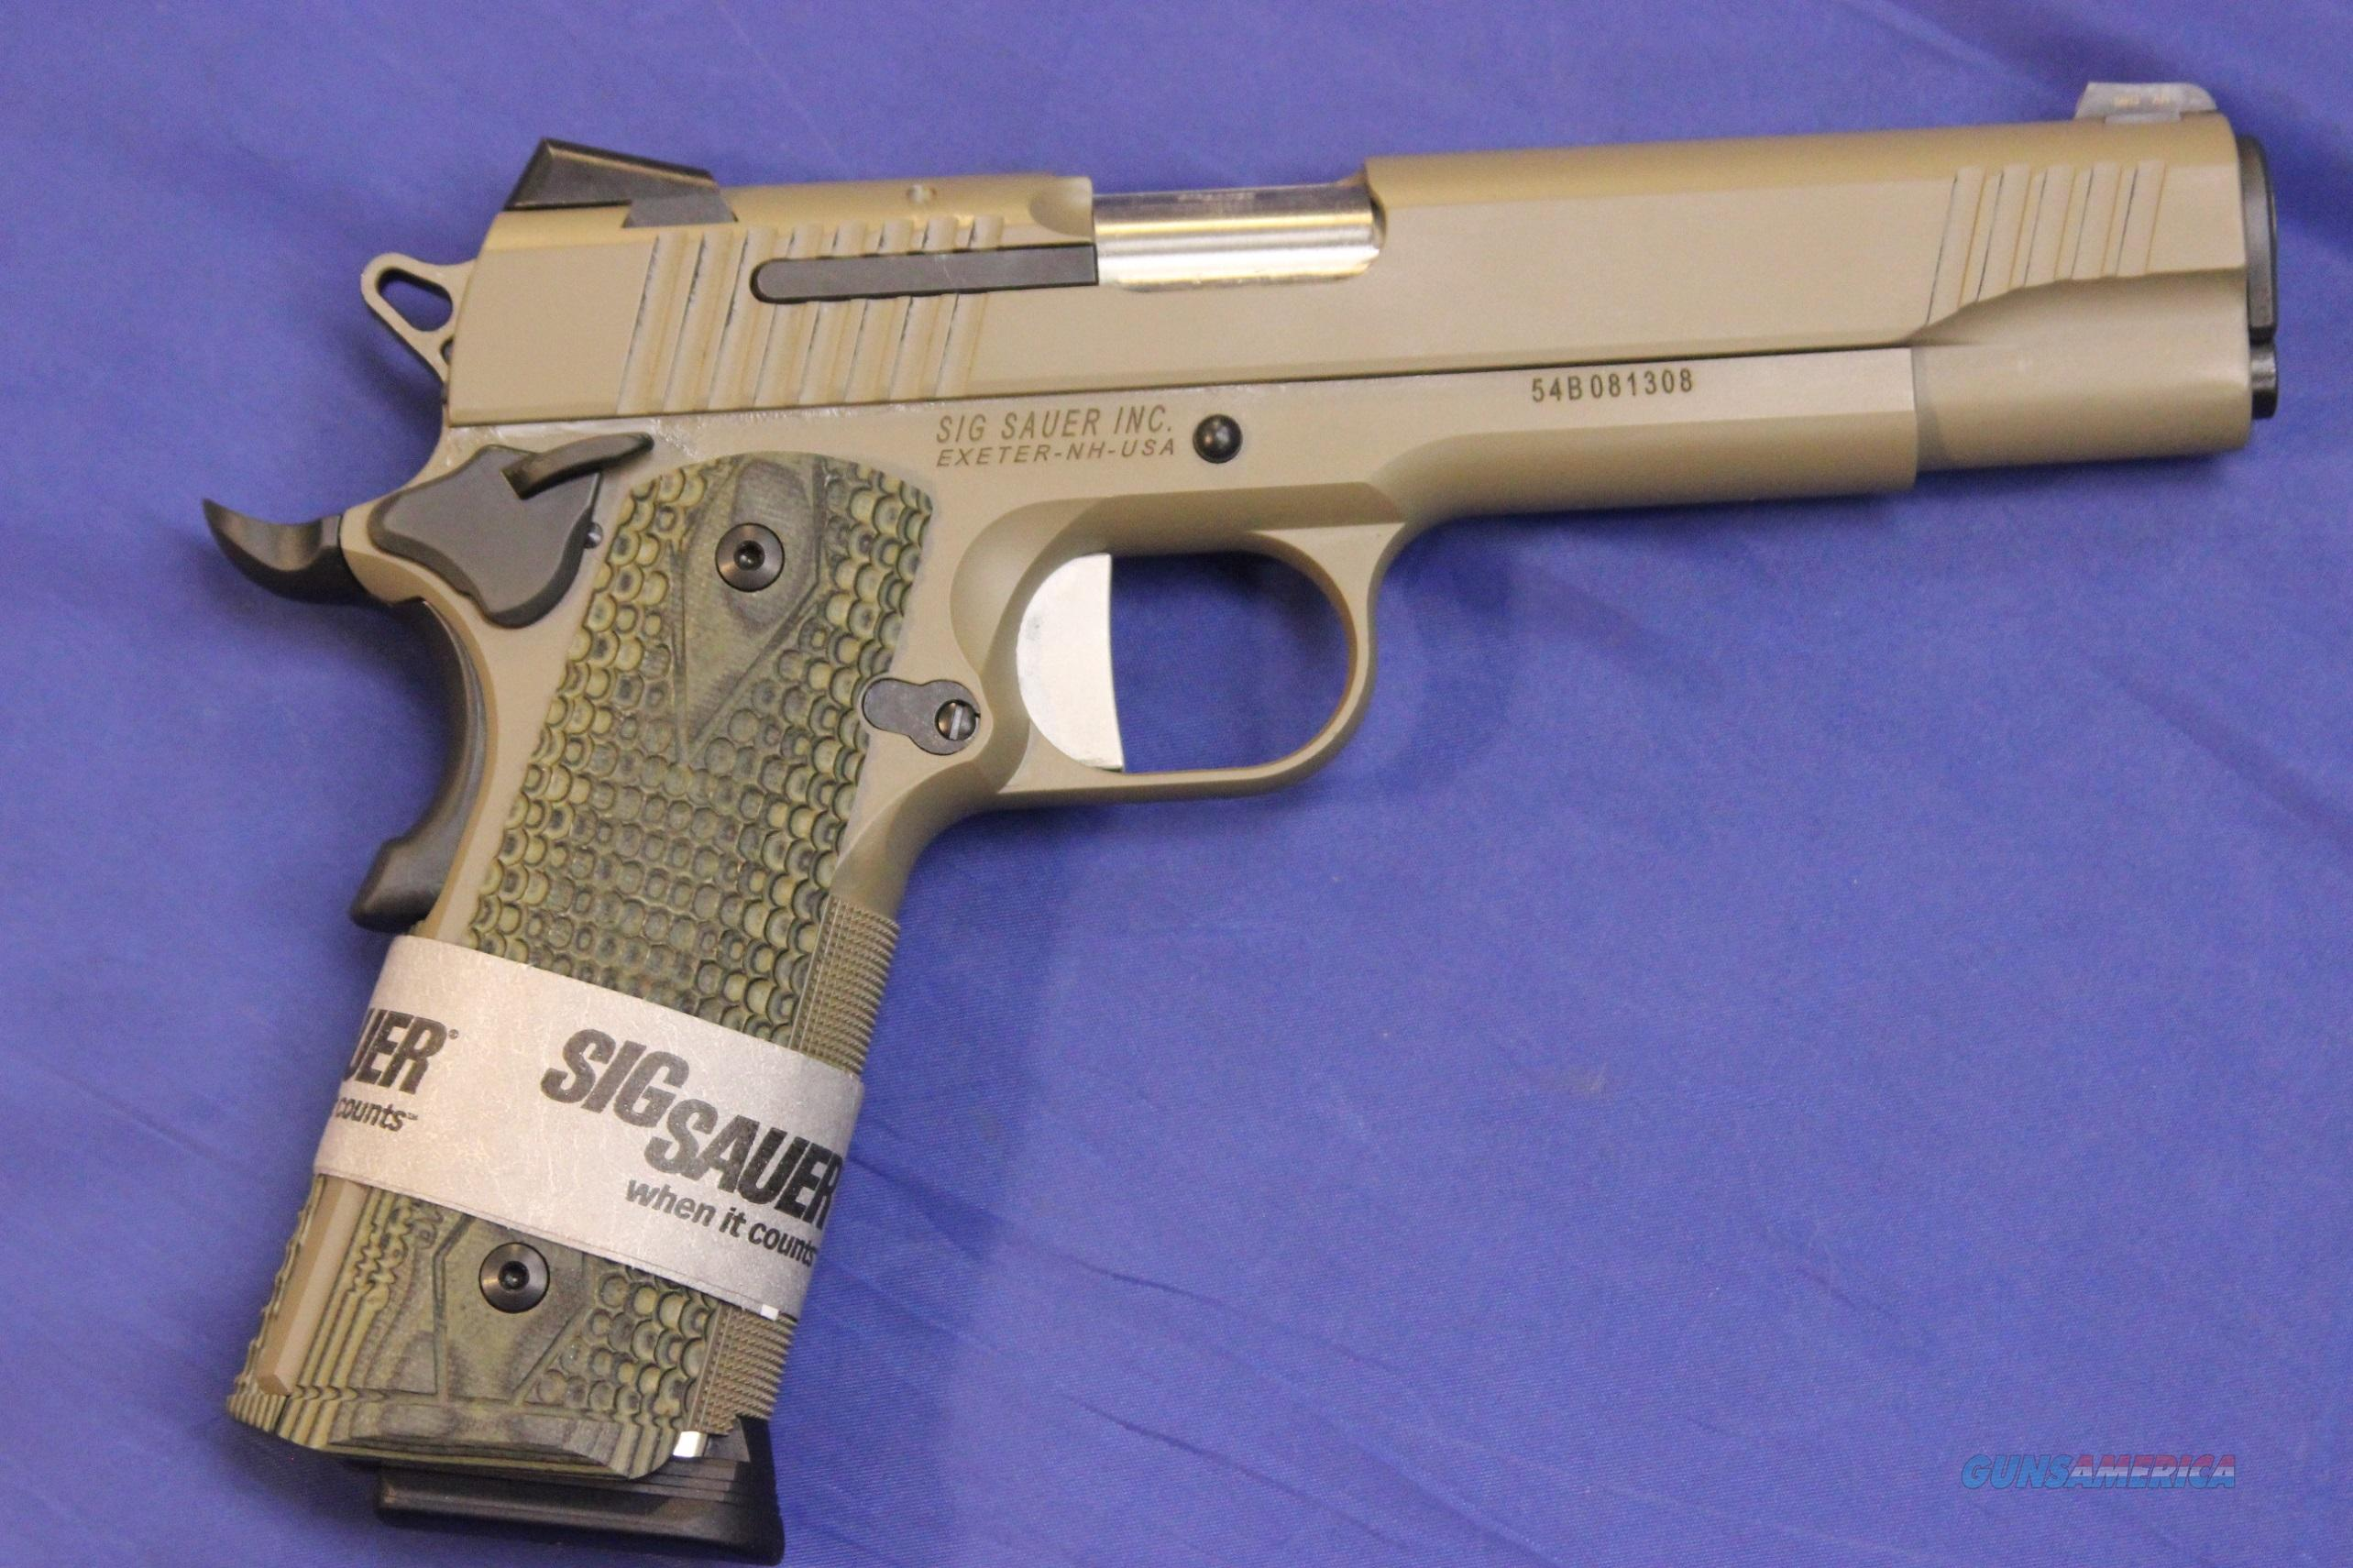 SIG SAUER 1911 SCORPION .45 ACP - NEW - FREE SHIPPING!  Guns > Pistols > Sig - Sauer/Sigarms Pistols > 1911